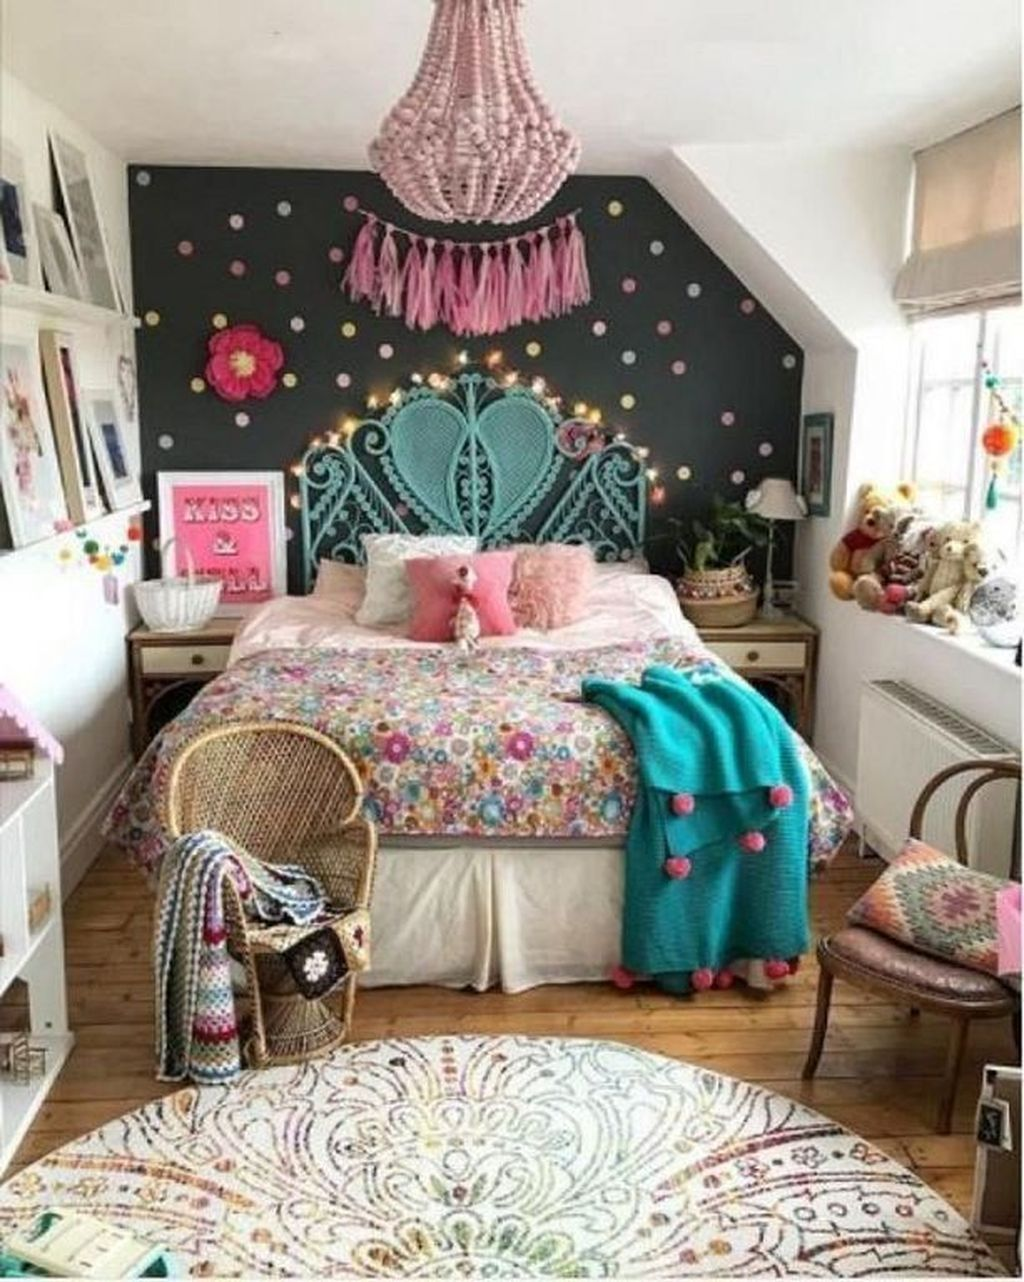 39 Elegant Kids Bedroom Design Ideas For Little Girls #kidbedrooms